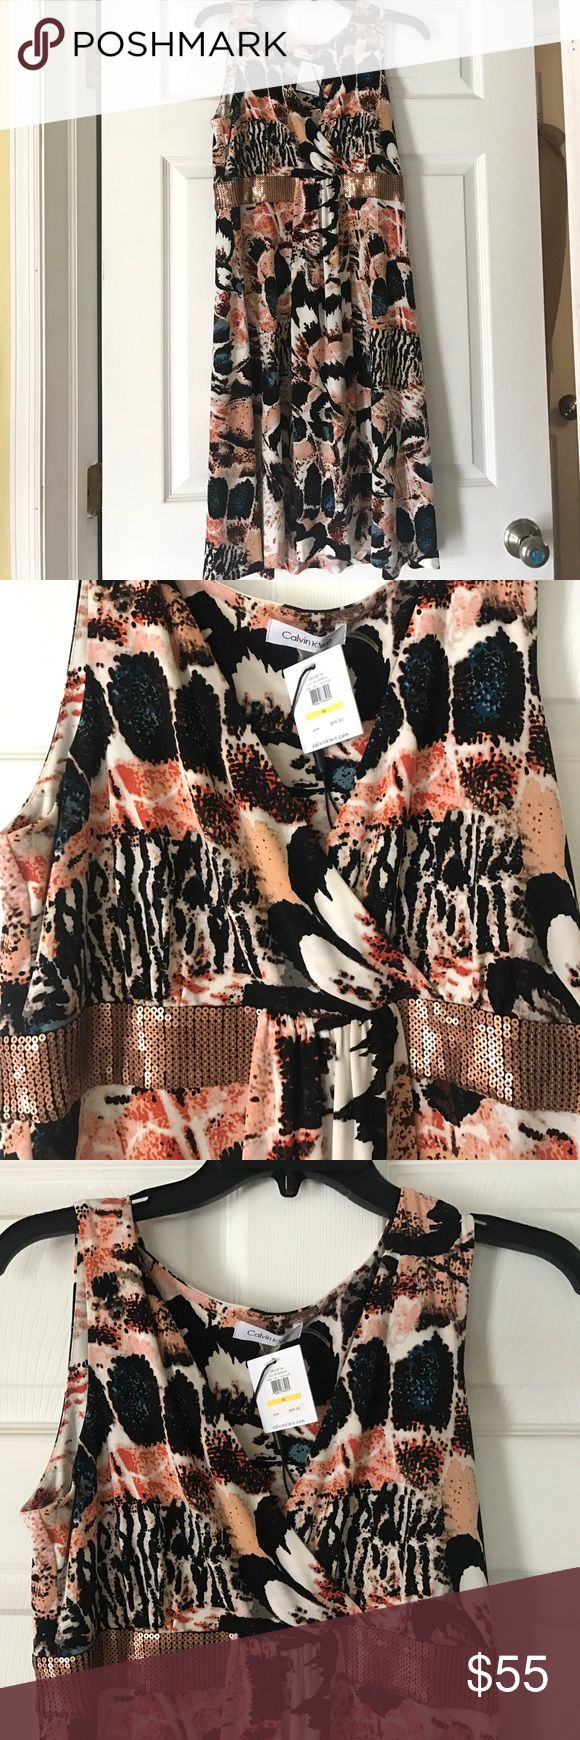 Calvin Klein size medium womens empire waist dress Calvin Klein size medium empire waist dress with sequins floral pattern. New with tags attached. Soft silky  fabric Calvin Klein Dresses Midi